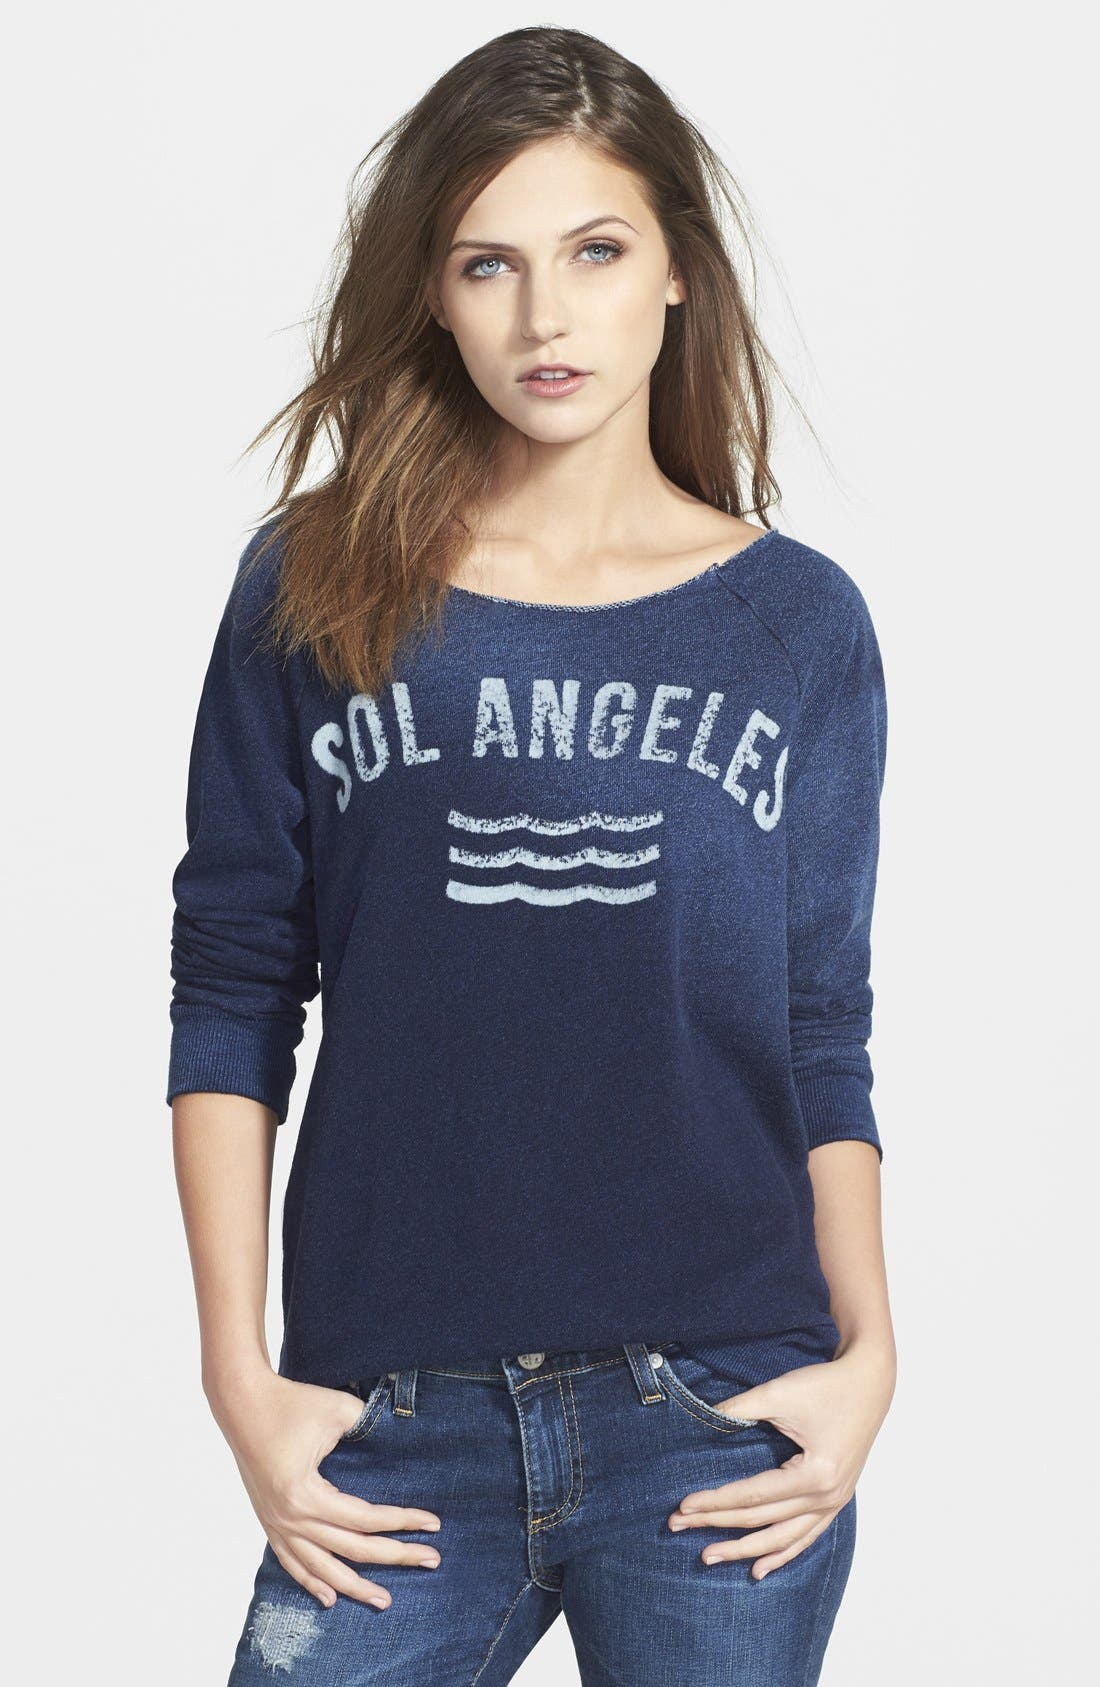 Alternate Image 1 Selected - Sol Angeles 'New Arc' Pullover